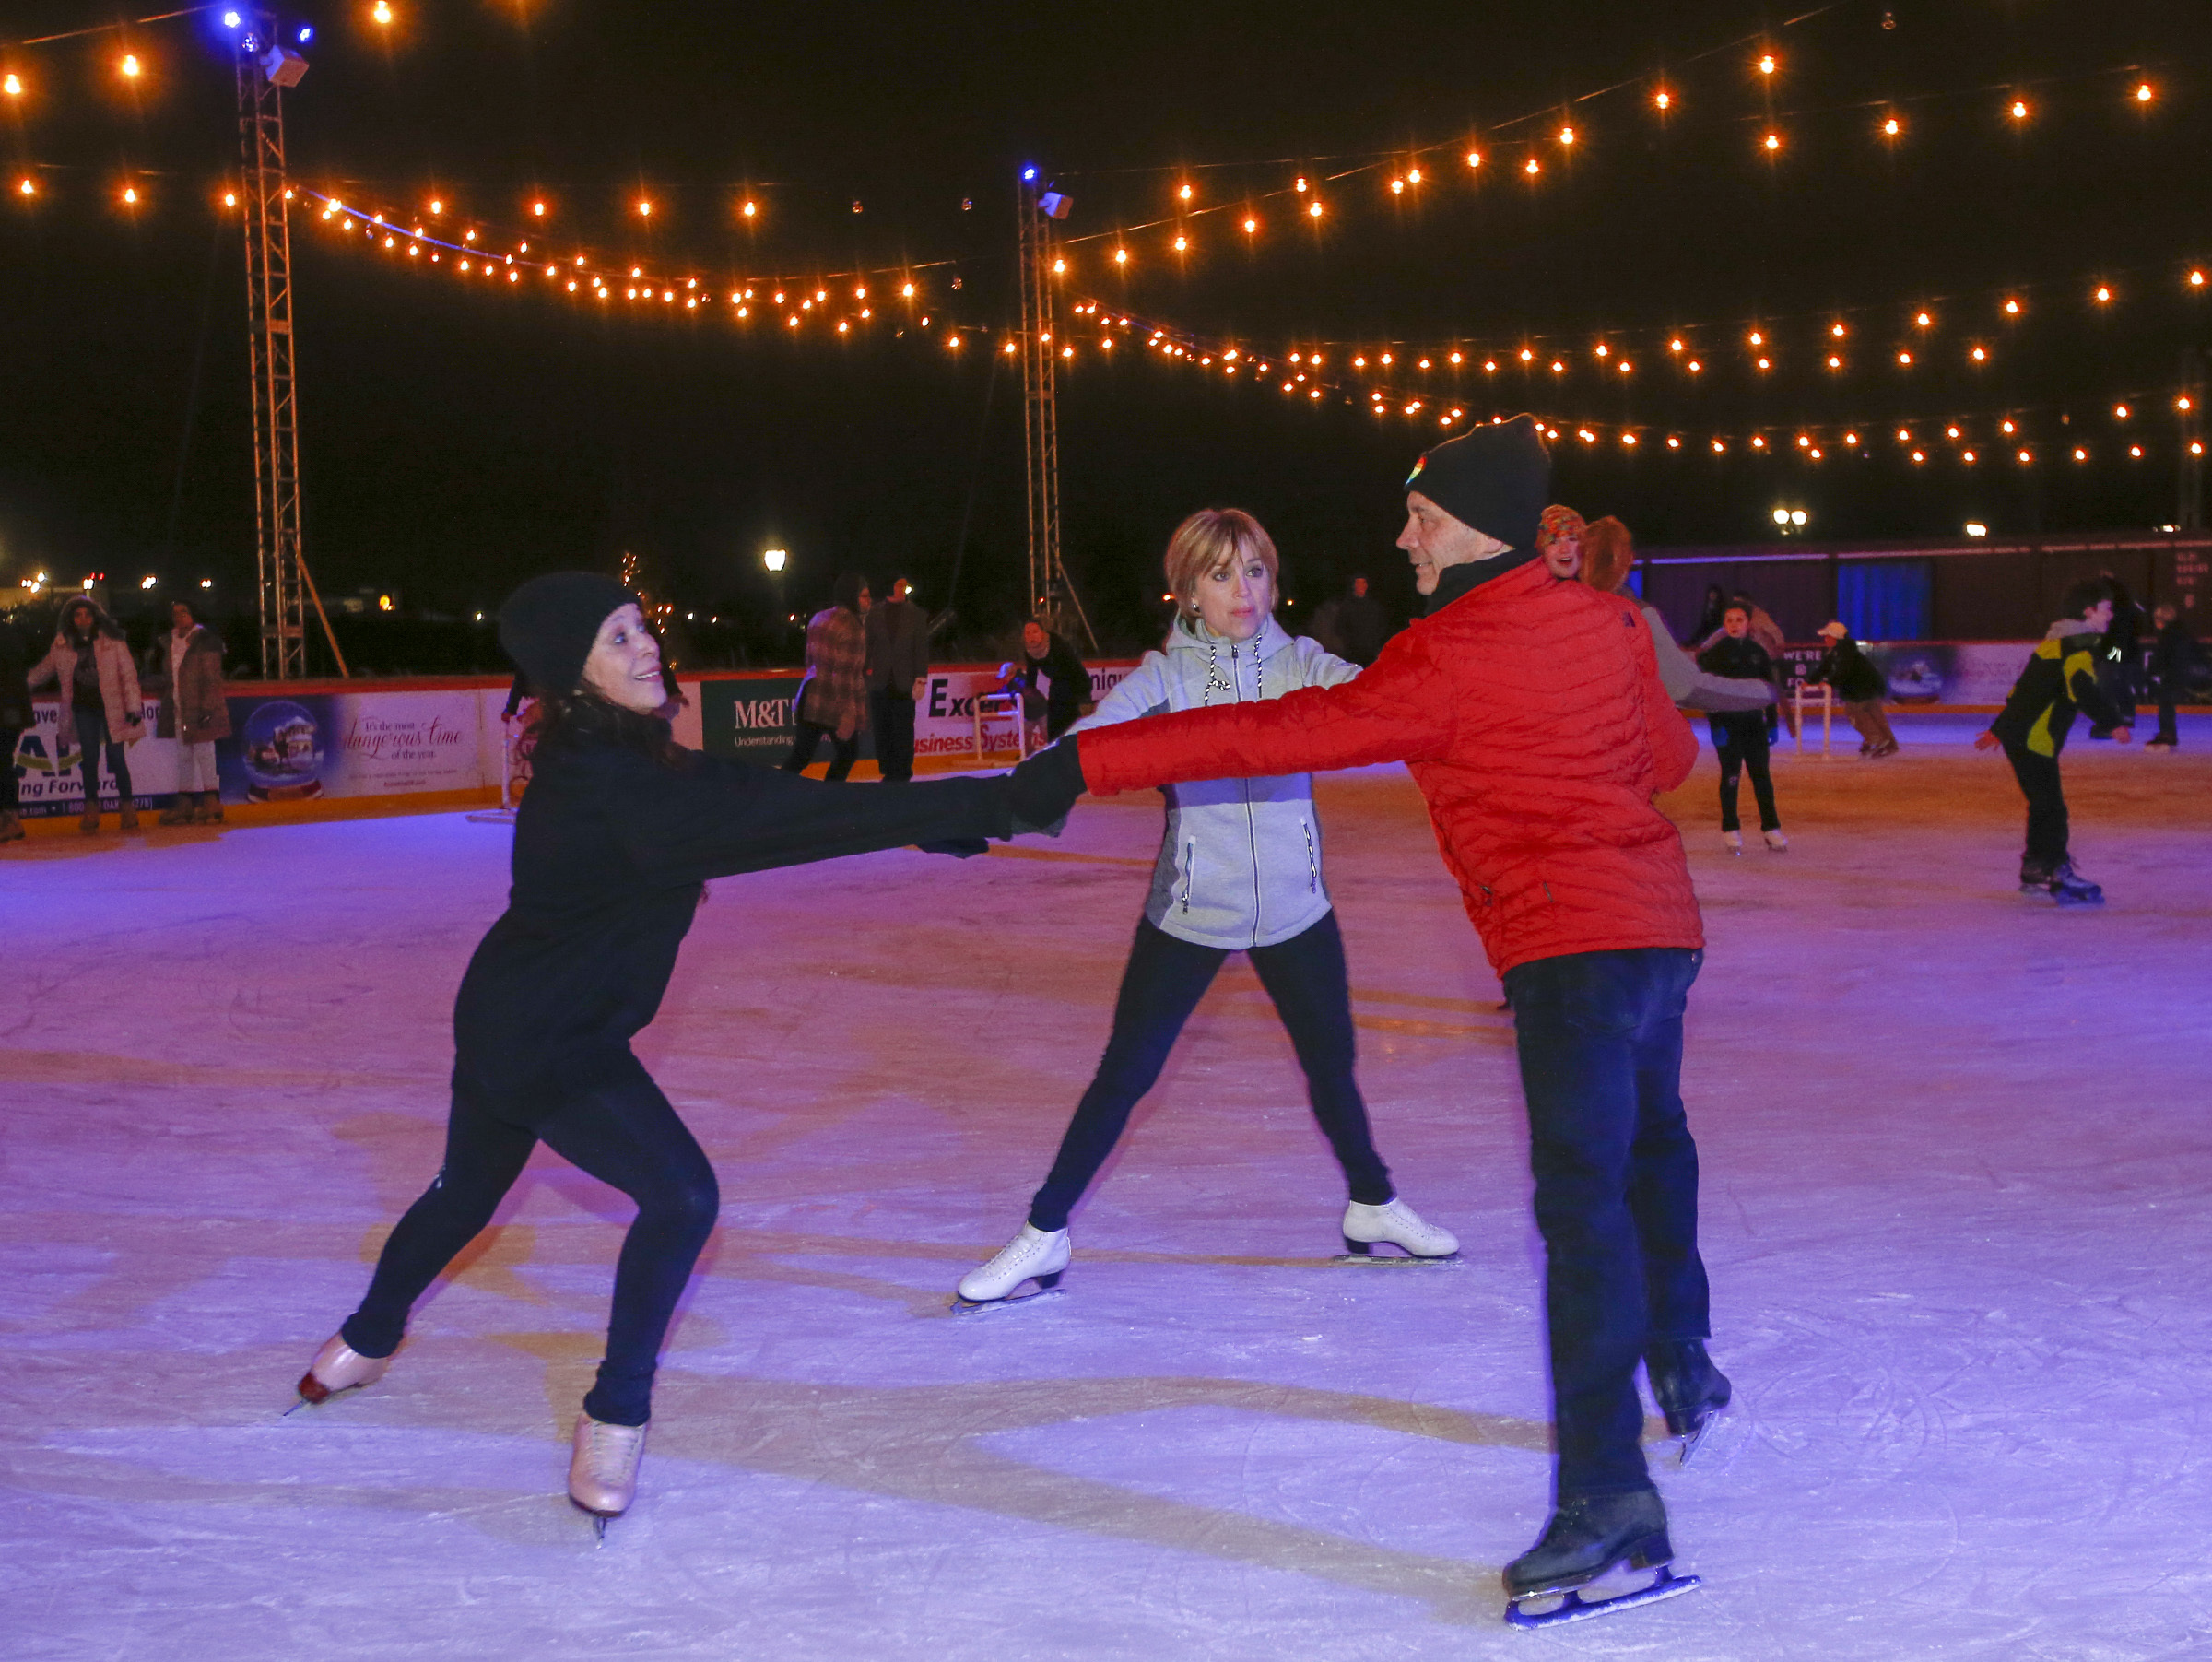 From right: Tai Babilonia, Randy Gardner and Dorothy Hamill skate at Wilmington´s Riverfront Rink.